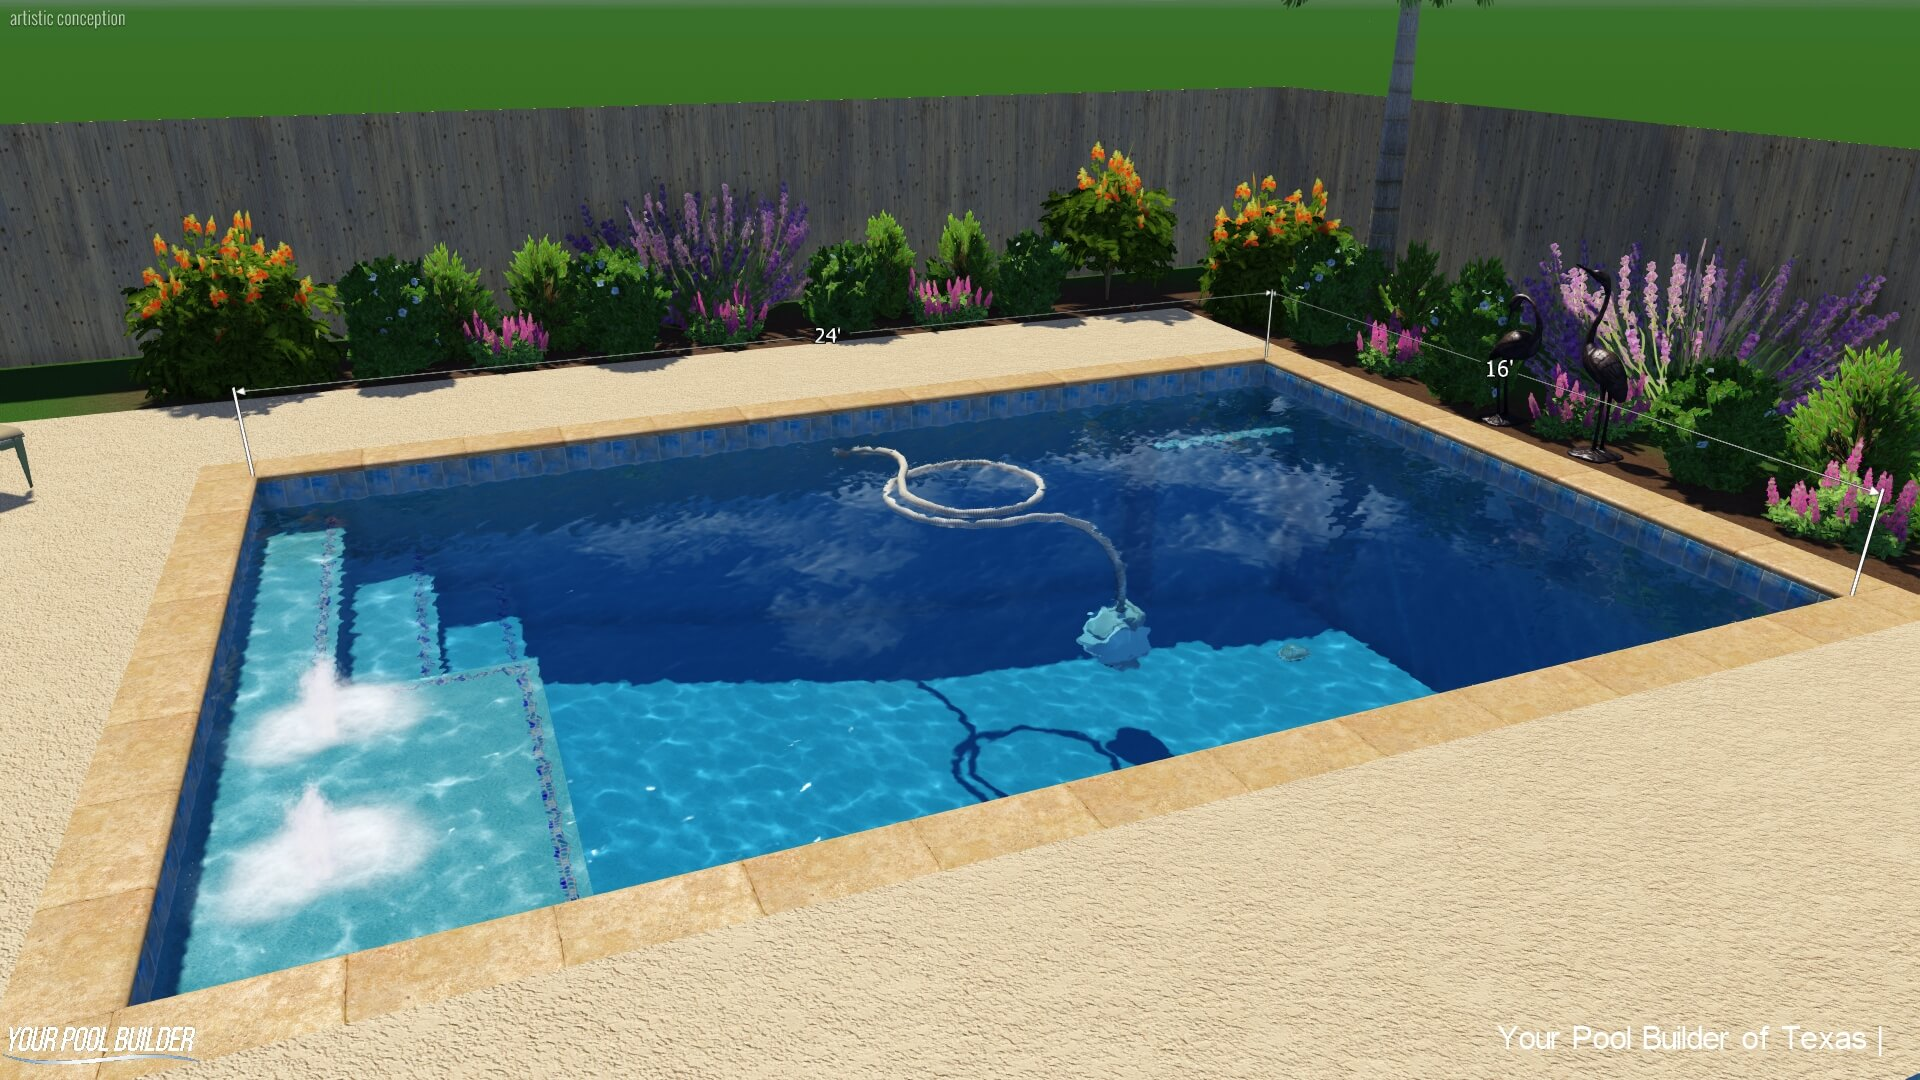 inground swimming pool upgrades cost and prices (4)